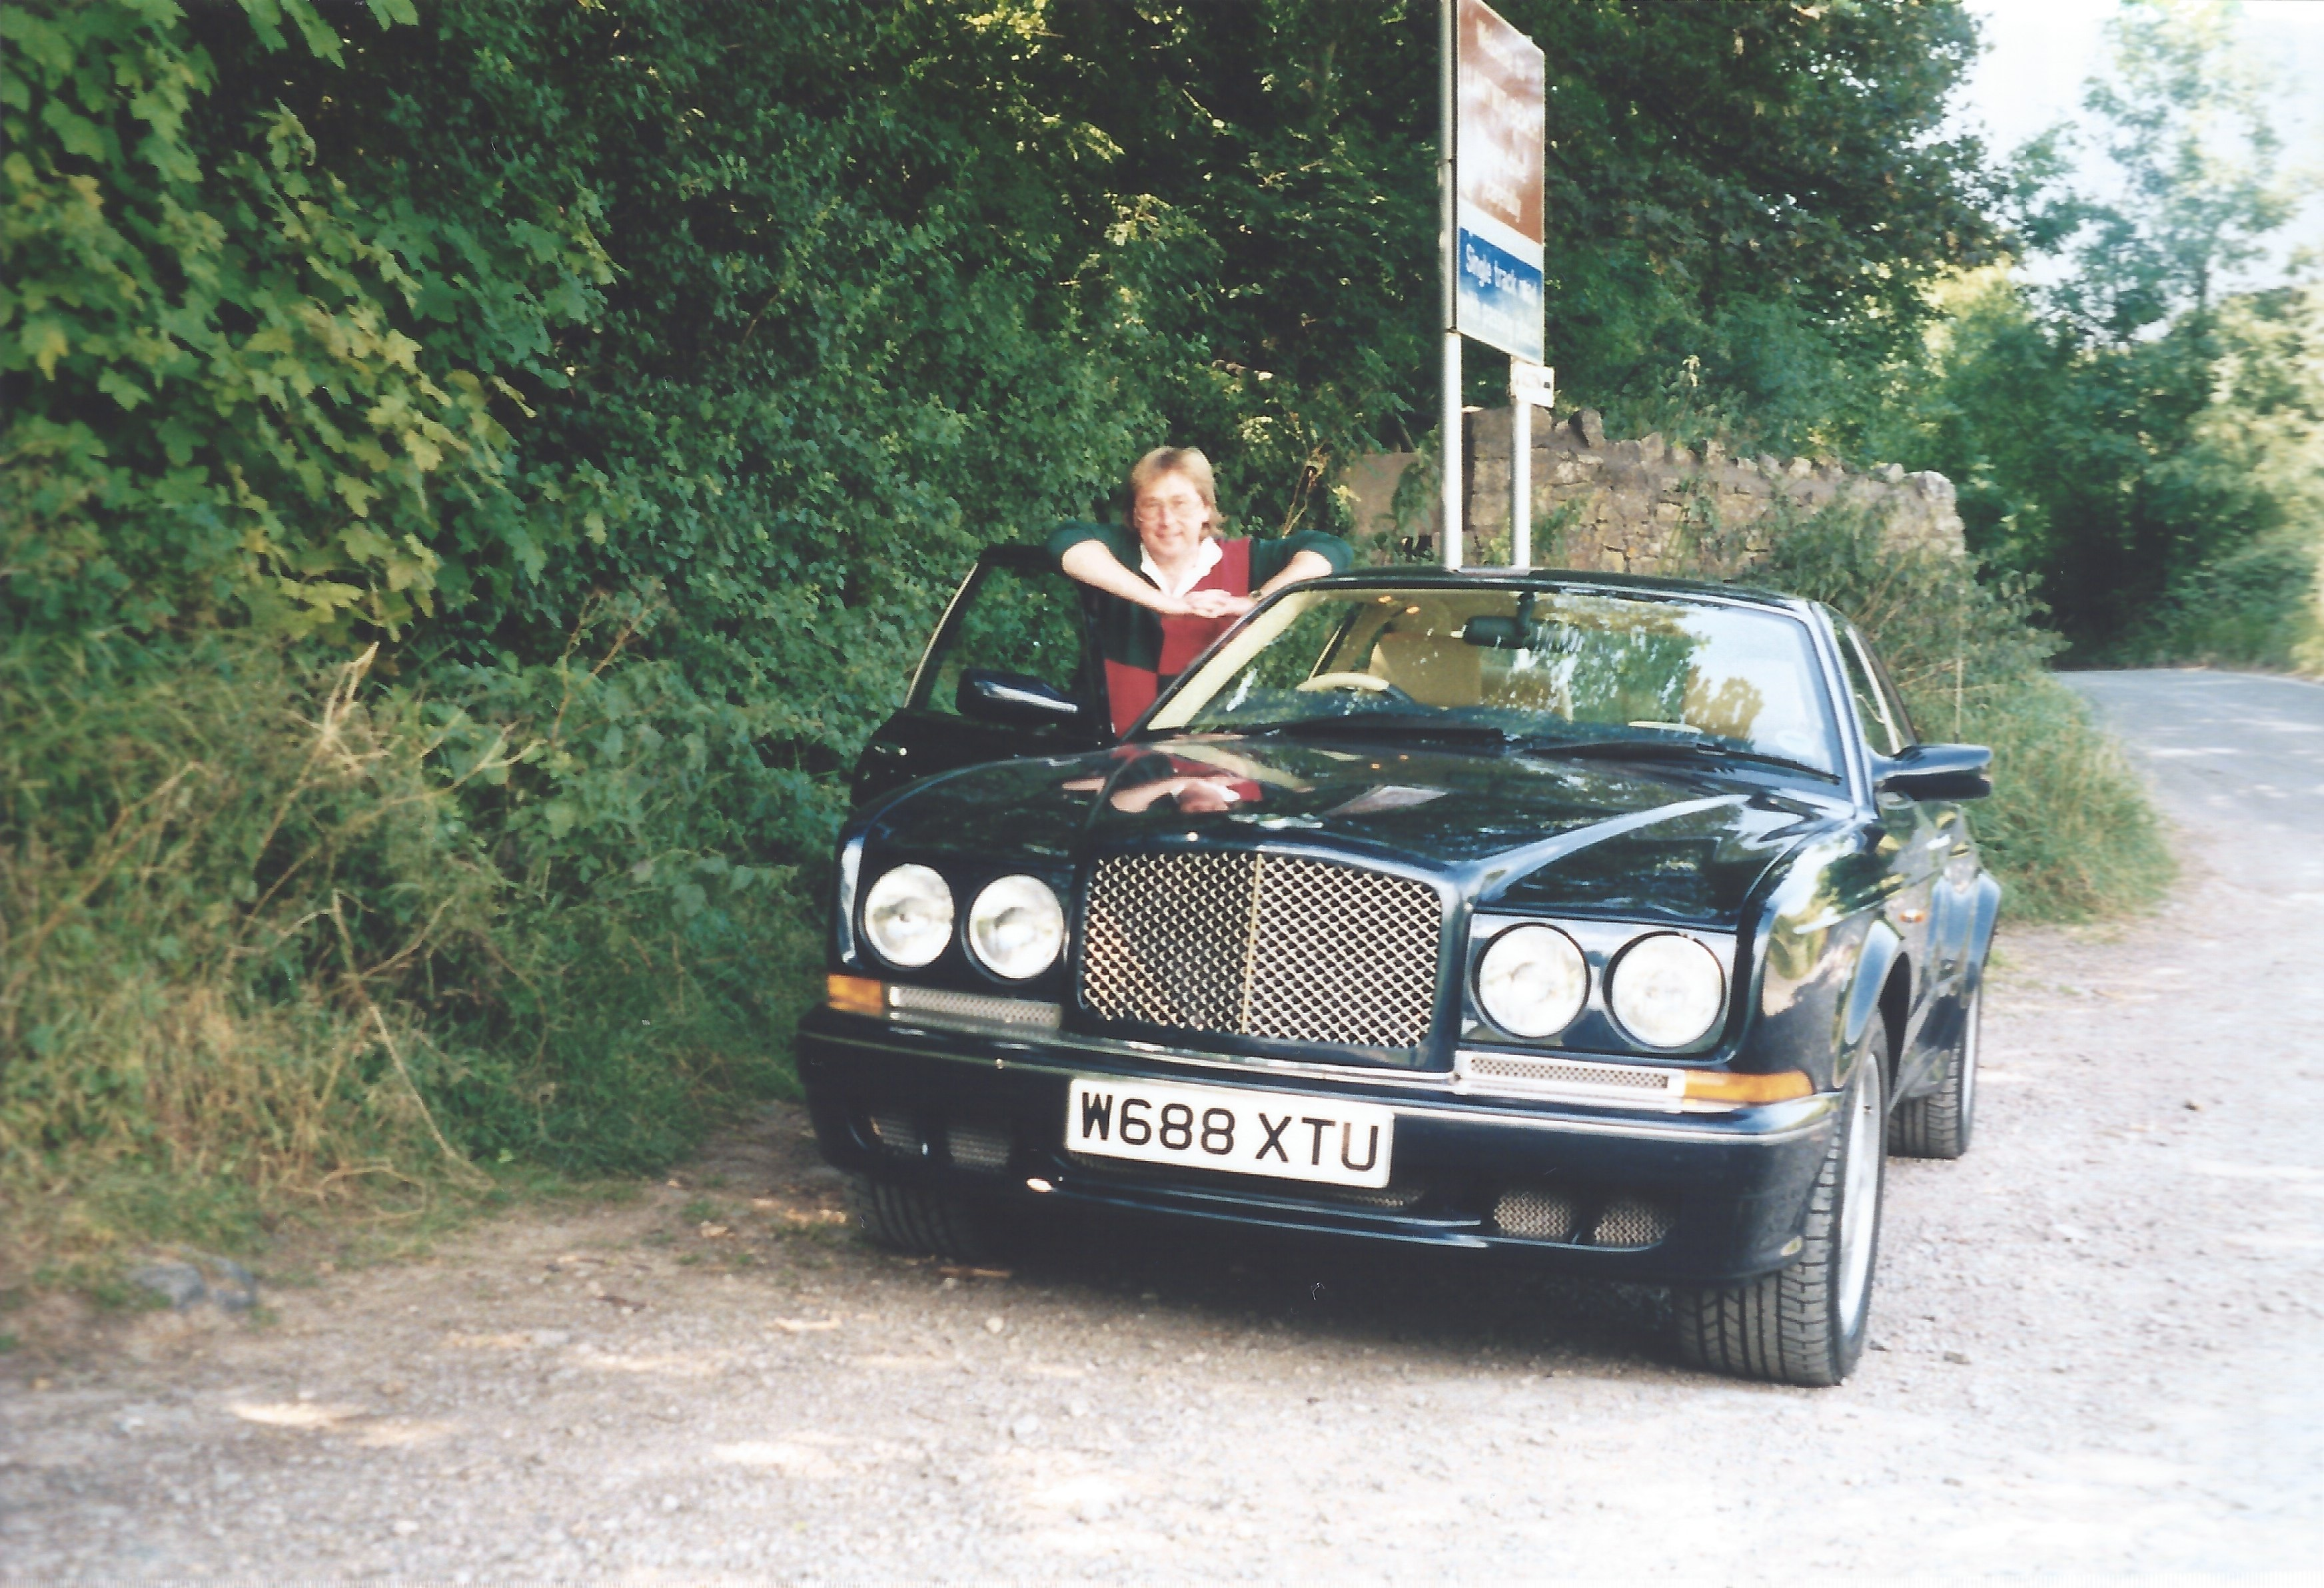 The author stood in the open doorway of a dark blue Bentley Continental